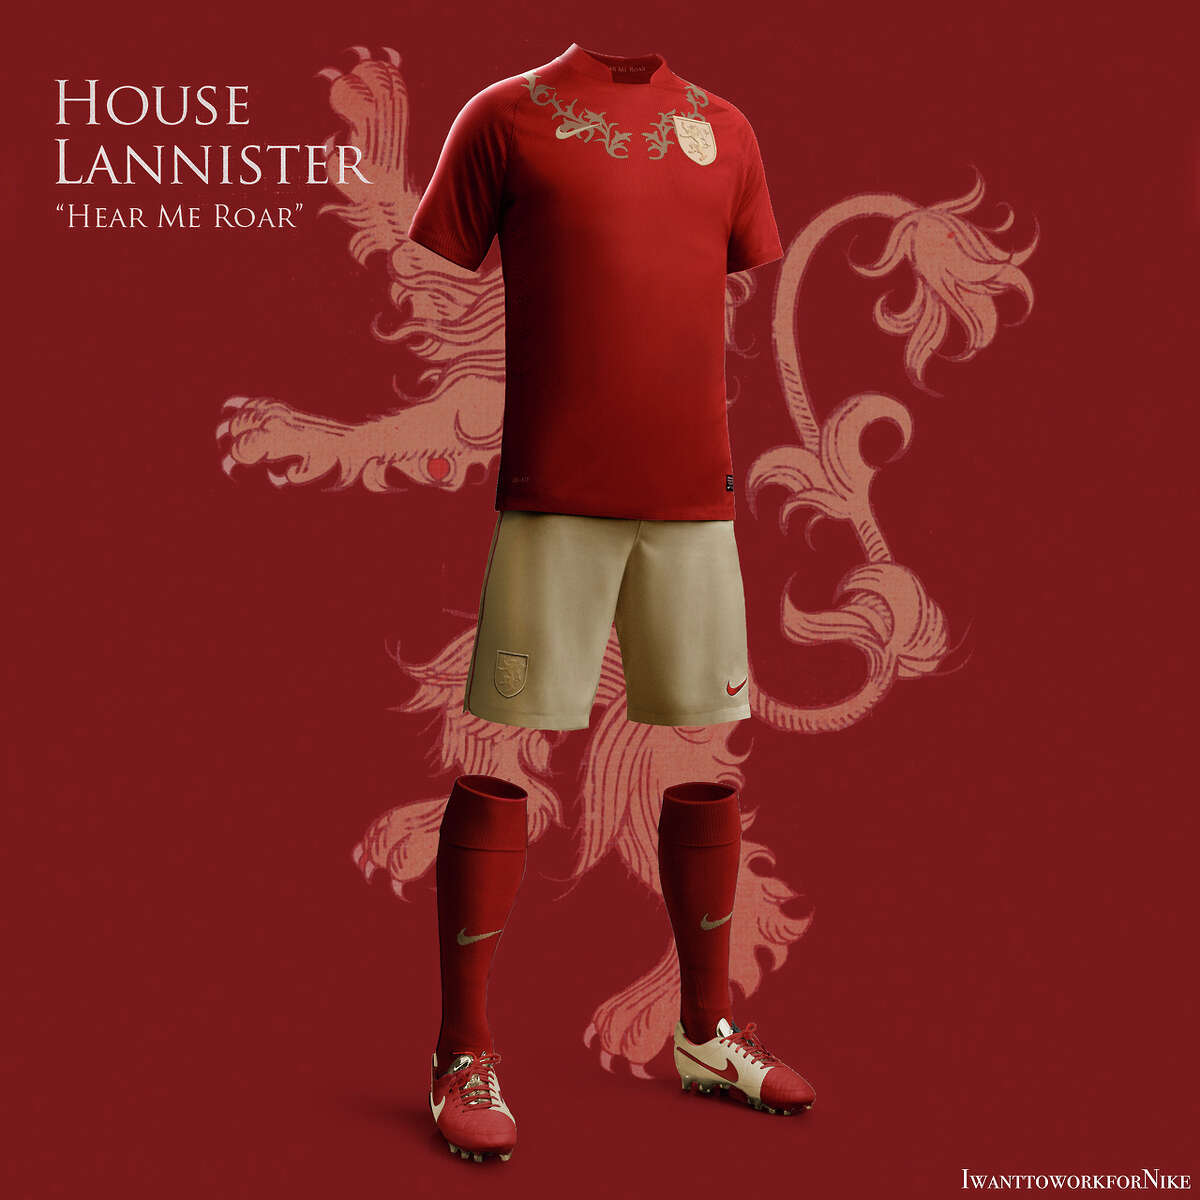 HOUSE LANNISTER Uniform design: Flashy and bold